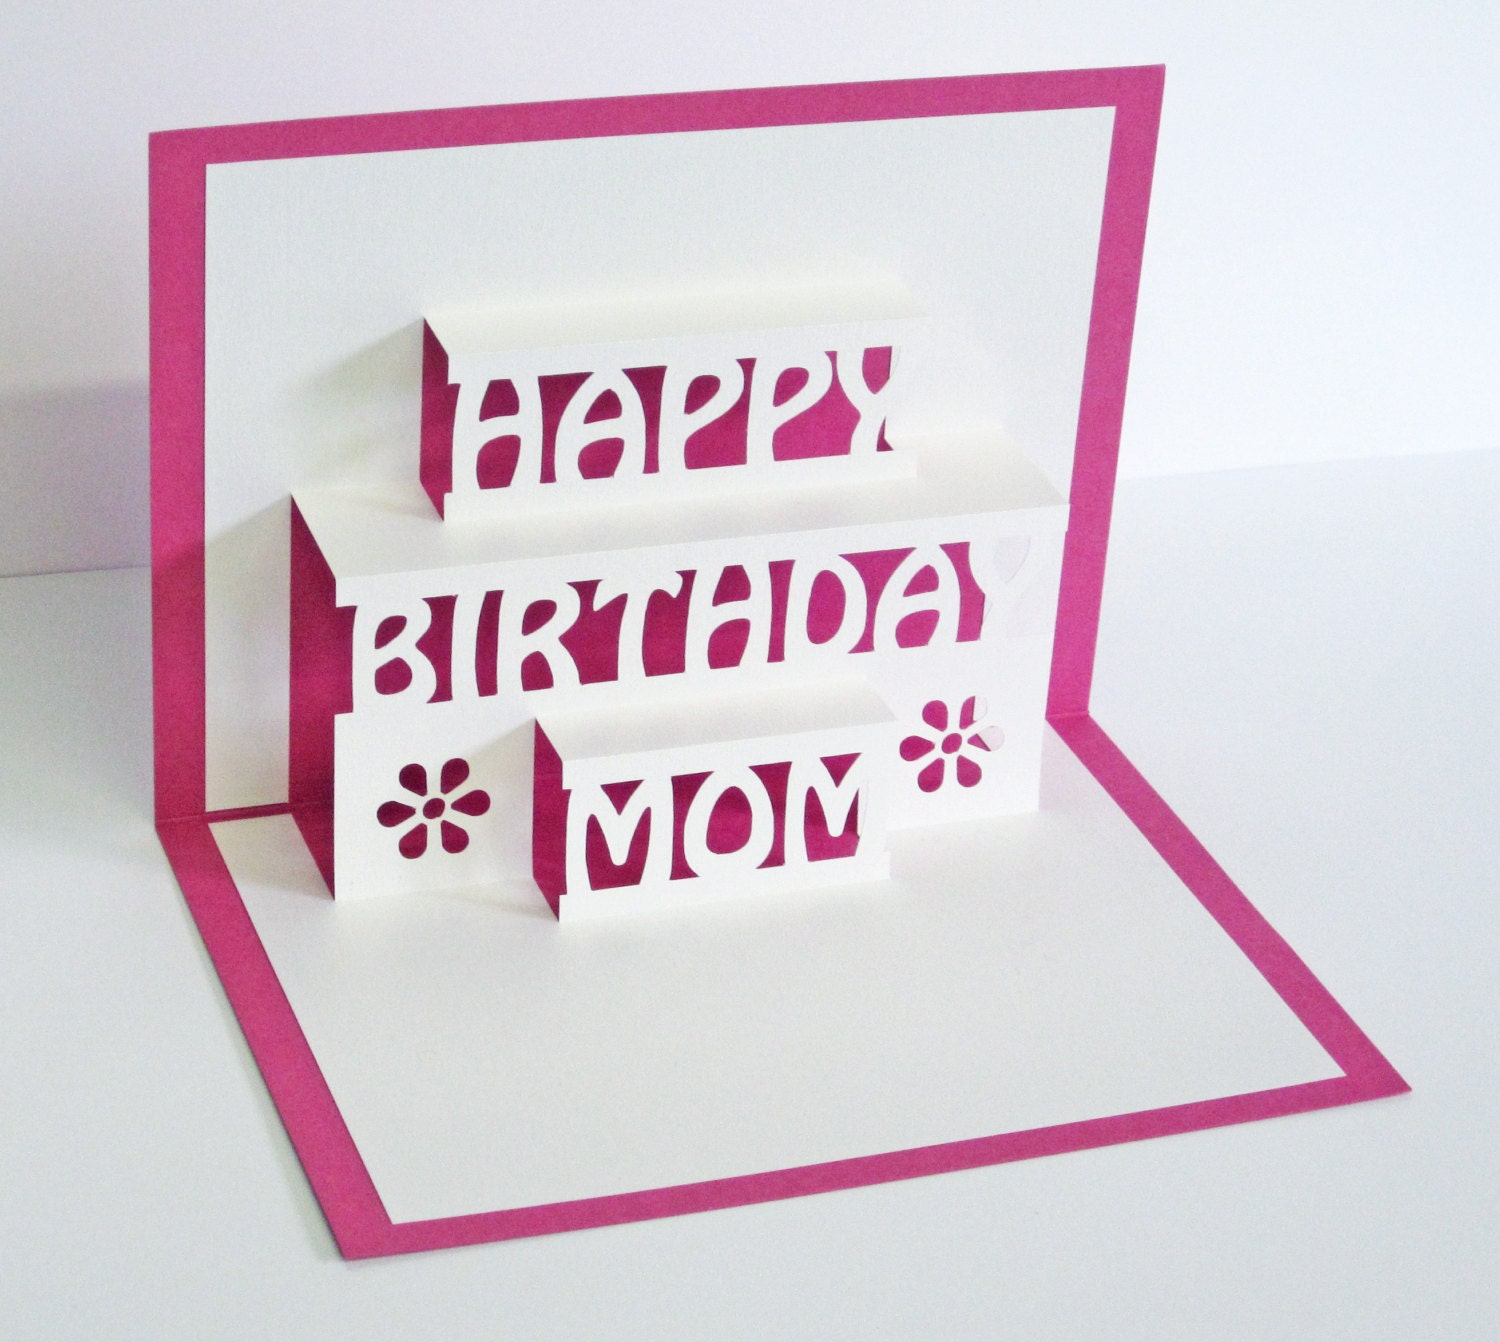 pop up birthday cards for mom mom birthday card 3d pop up happy birthday mom card